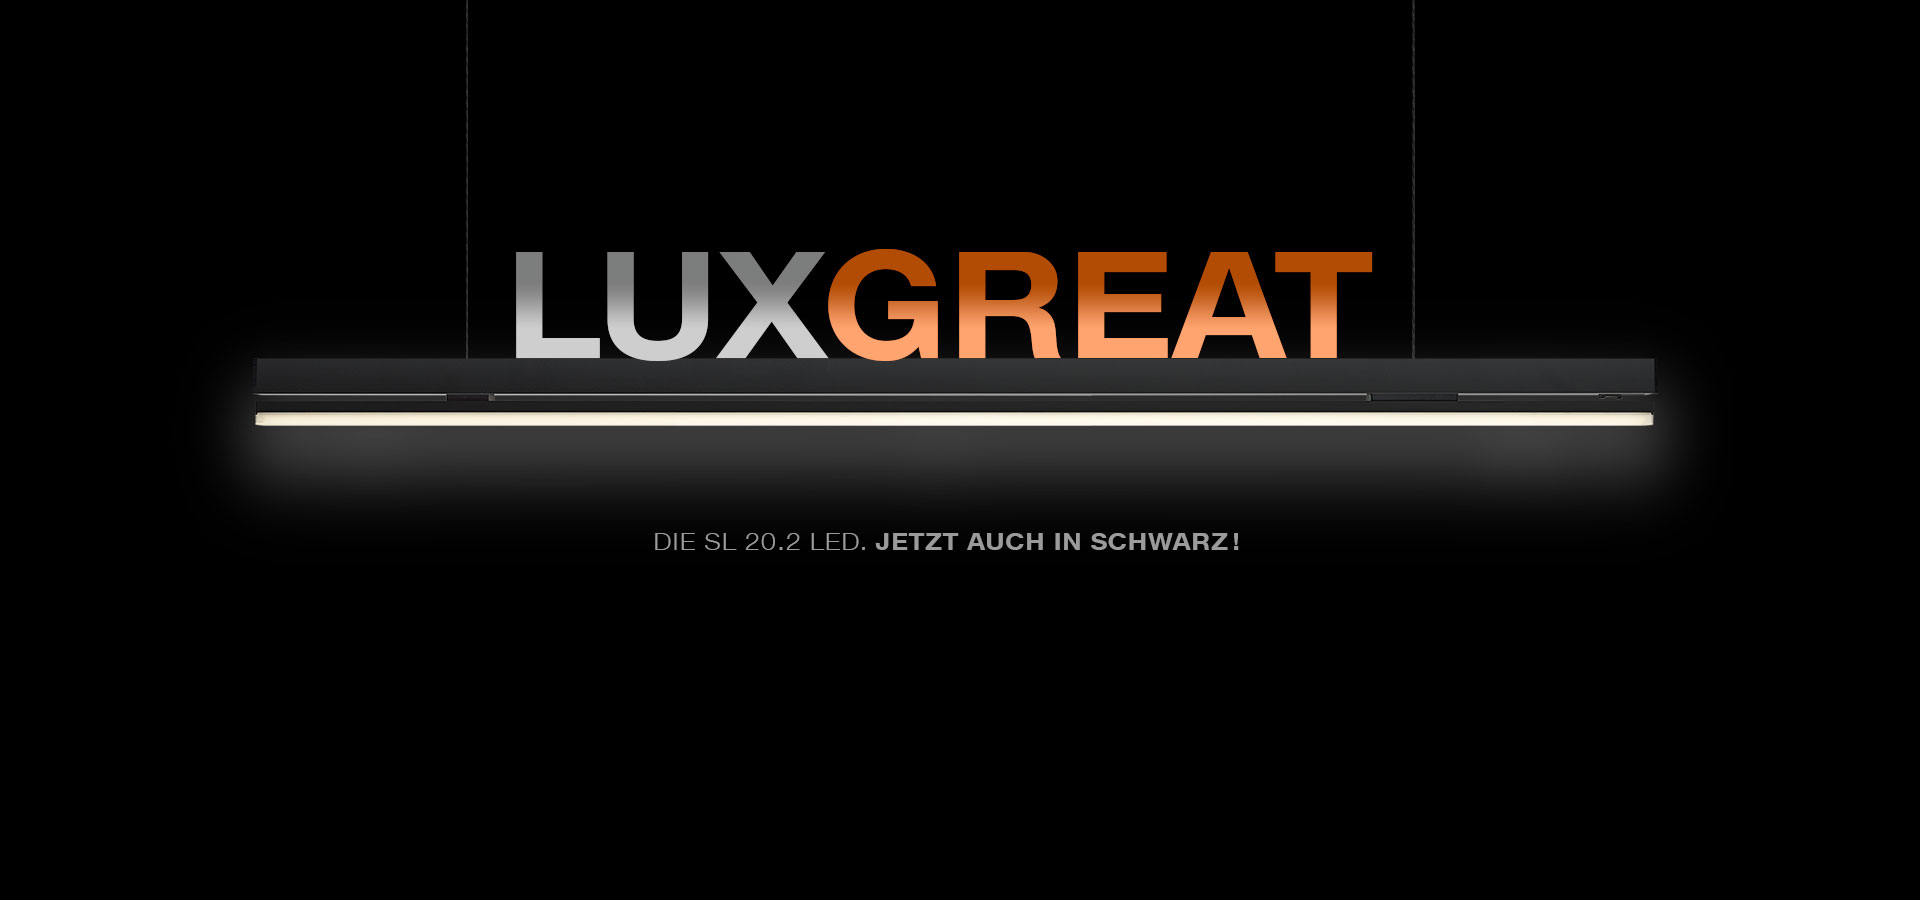 Luxsystem LED Leuchte SL 20.2 Eloxalfarbe Schwarz Header Lux Great